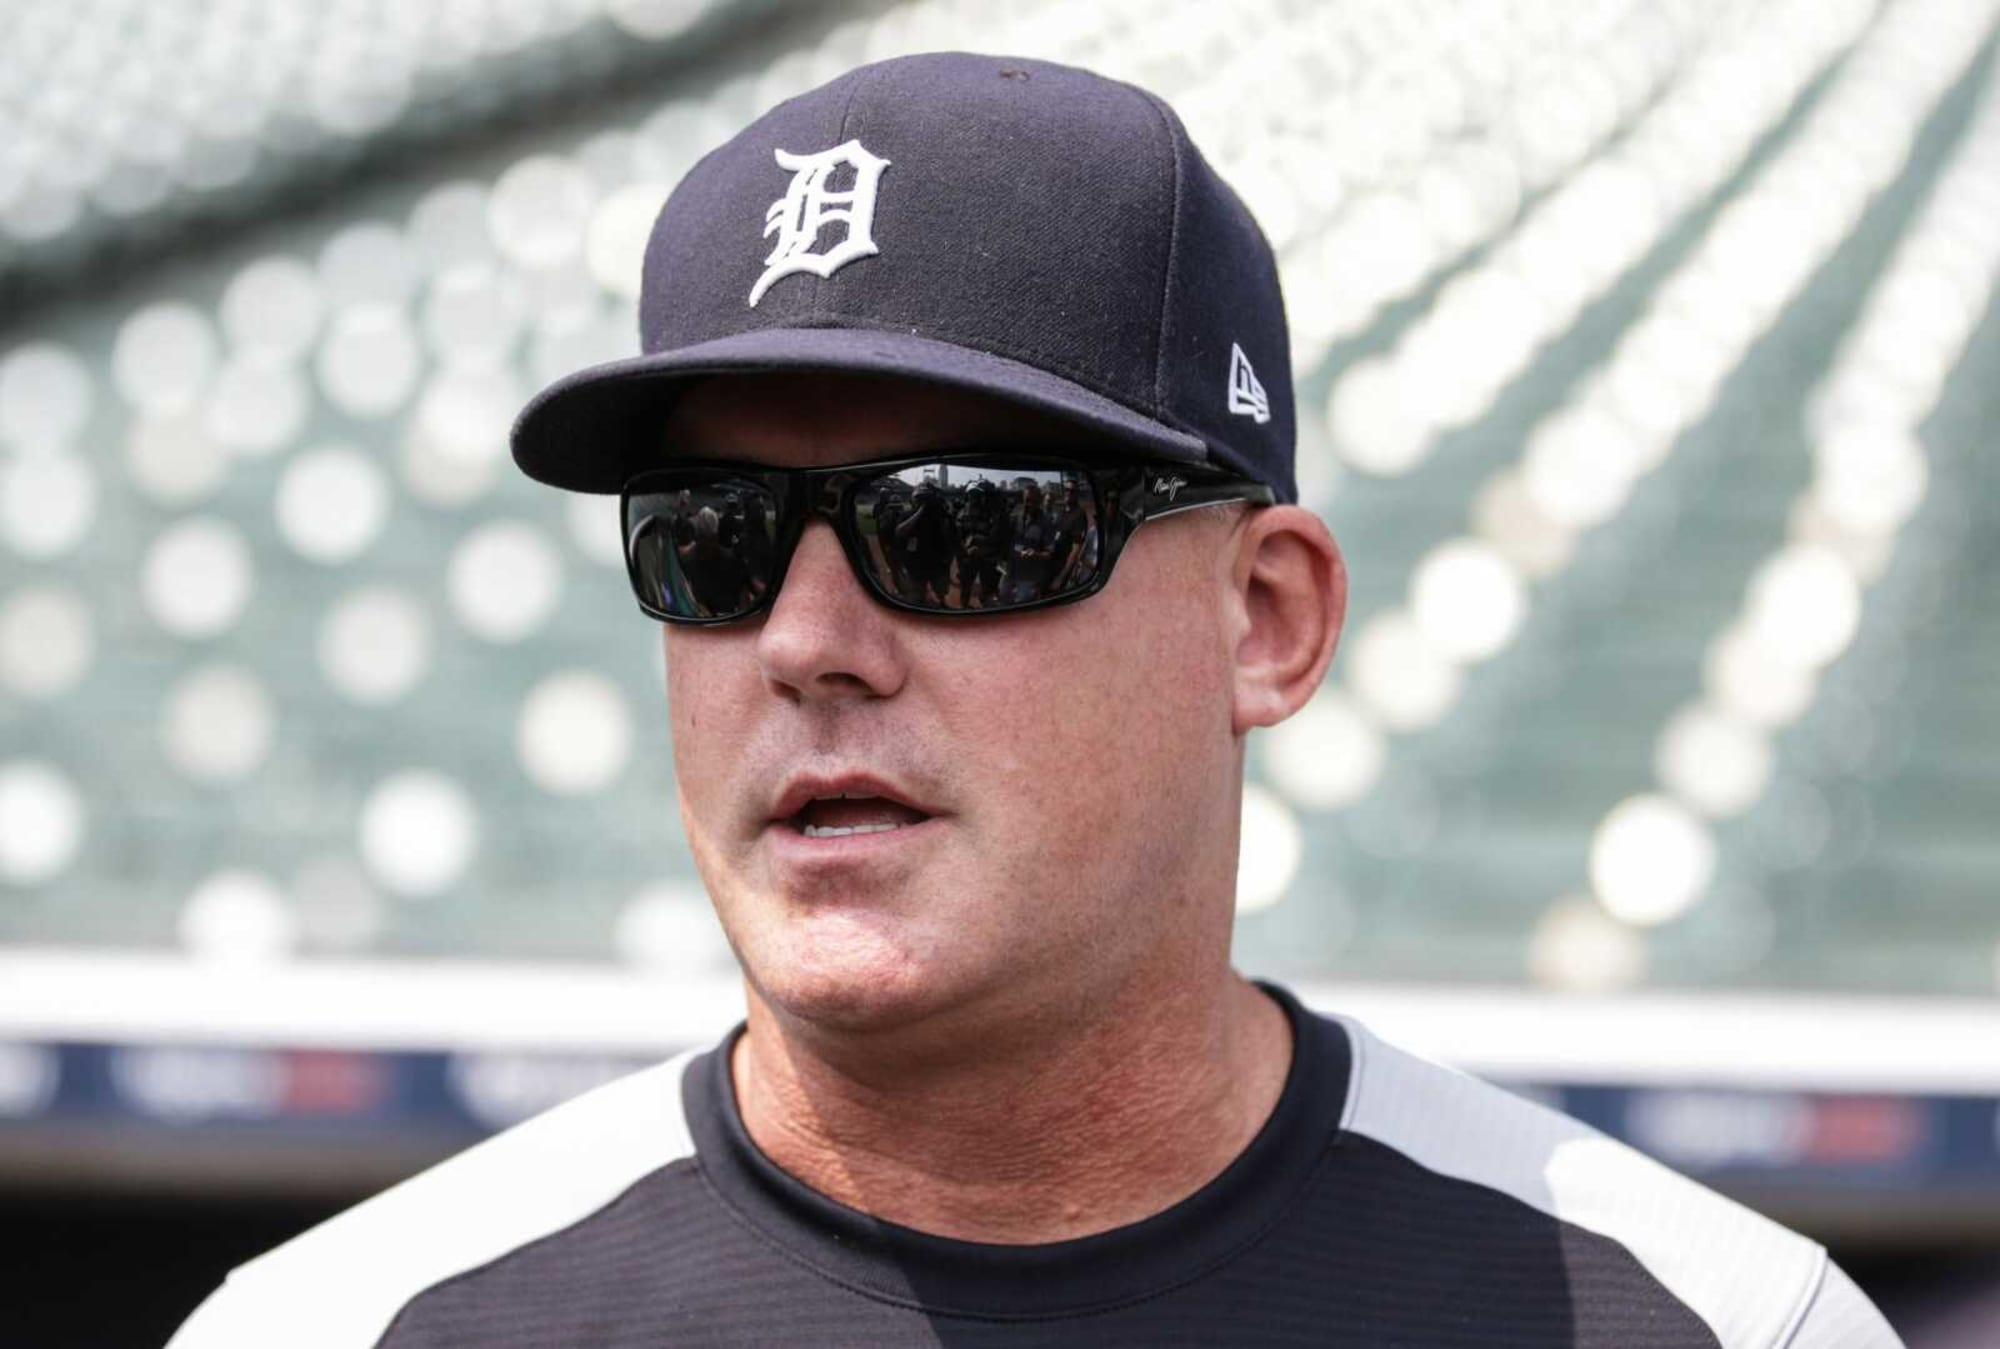 Detroit Tigers: The American League Manager of the Year is AJ Hinch